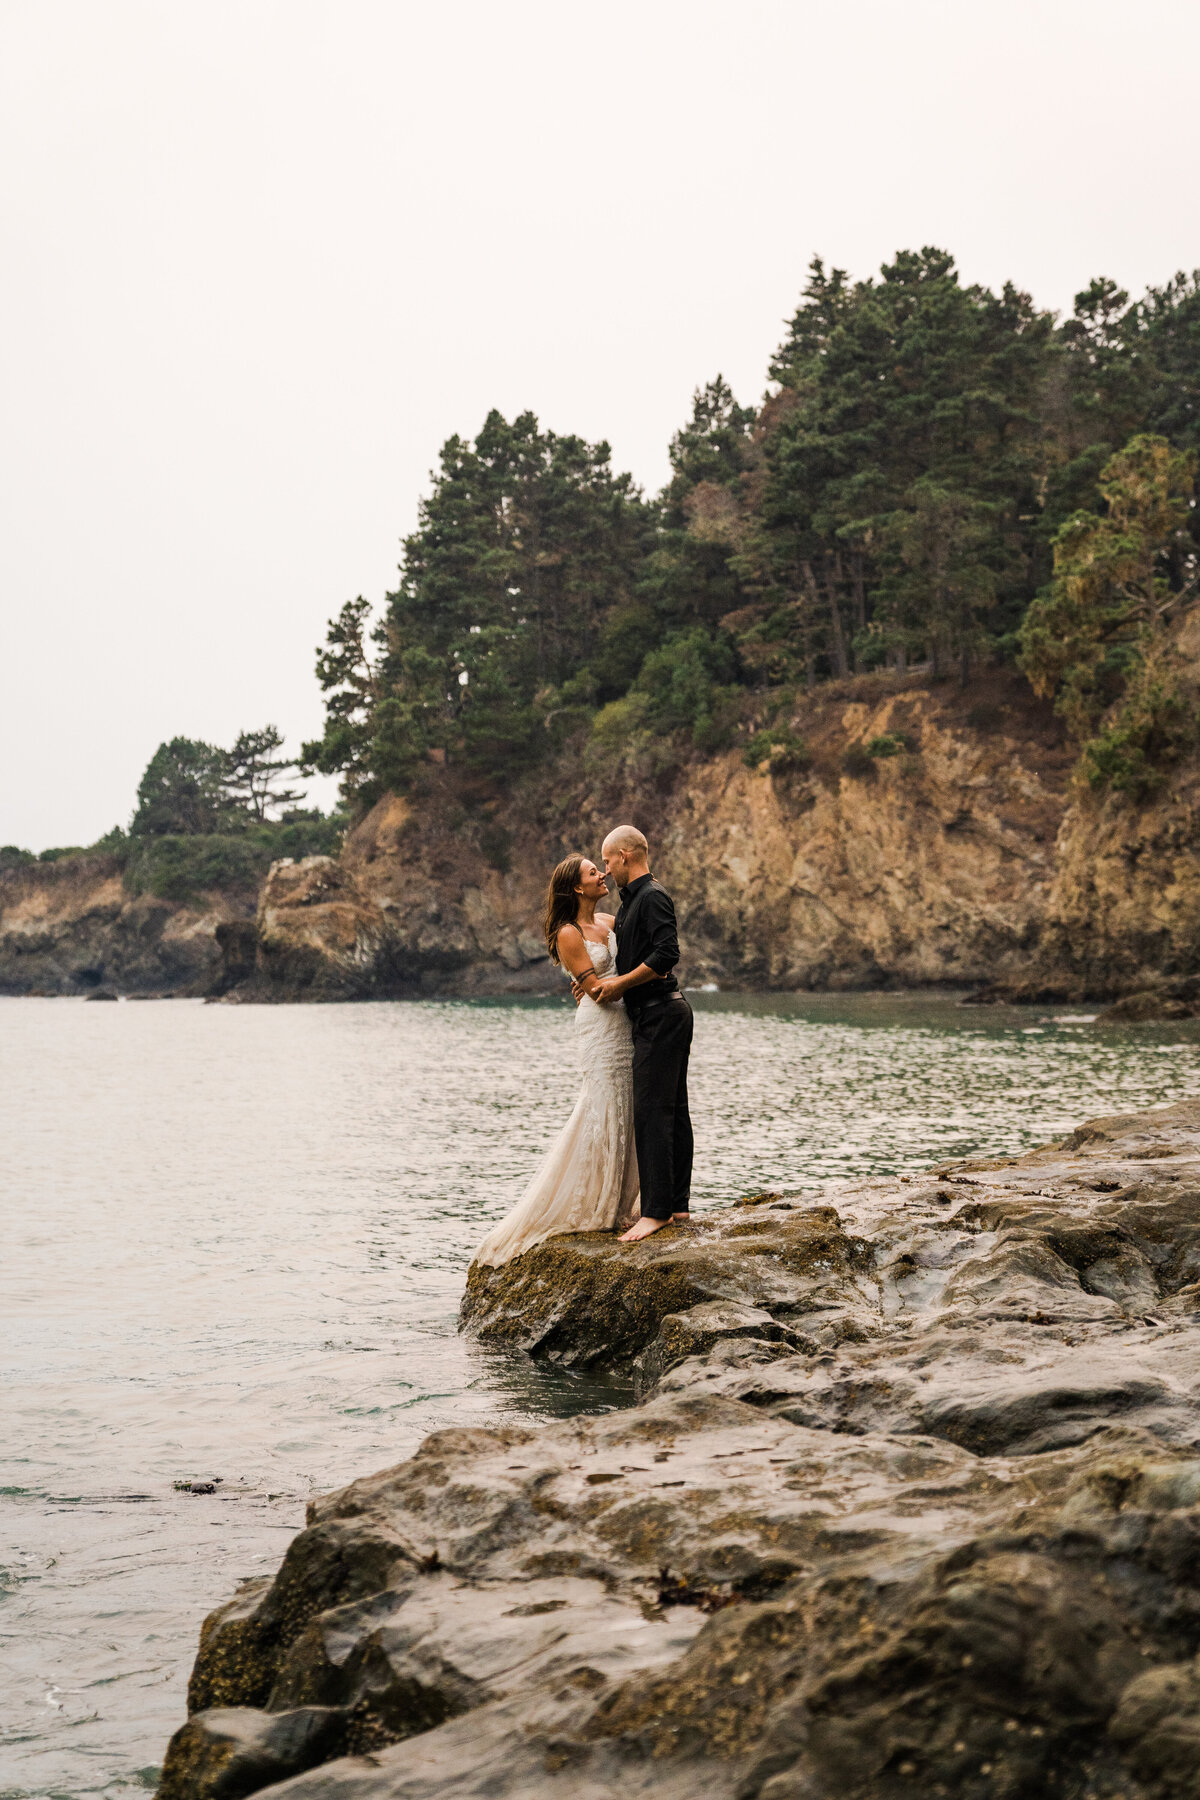 redwood-forest-coastal-elopement-kayl-scotty-california-elopement-photographer-13